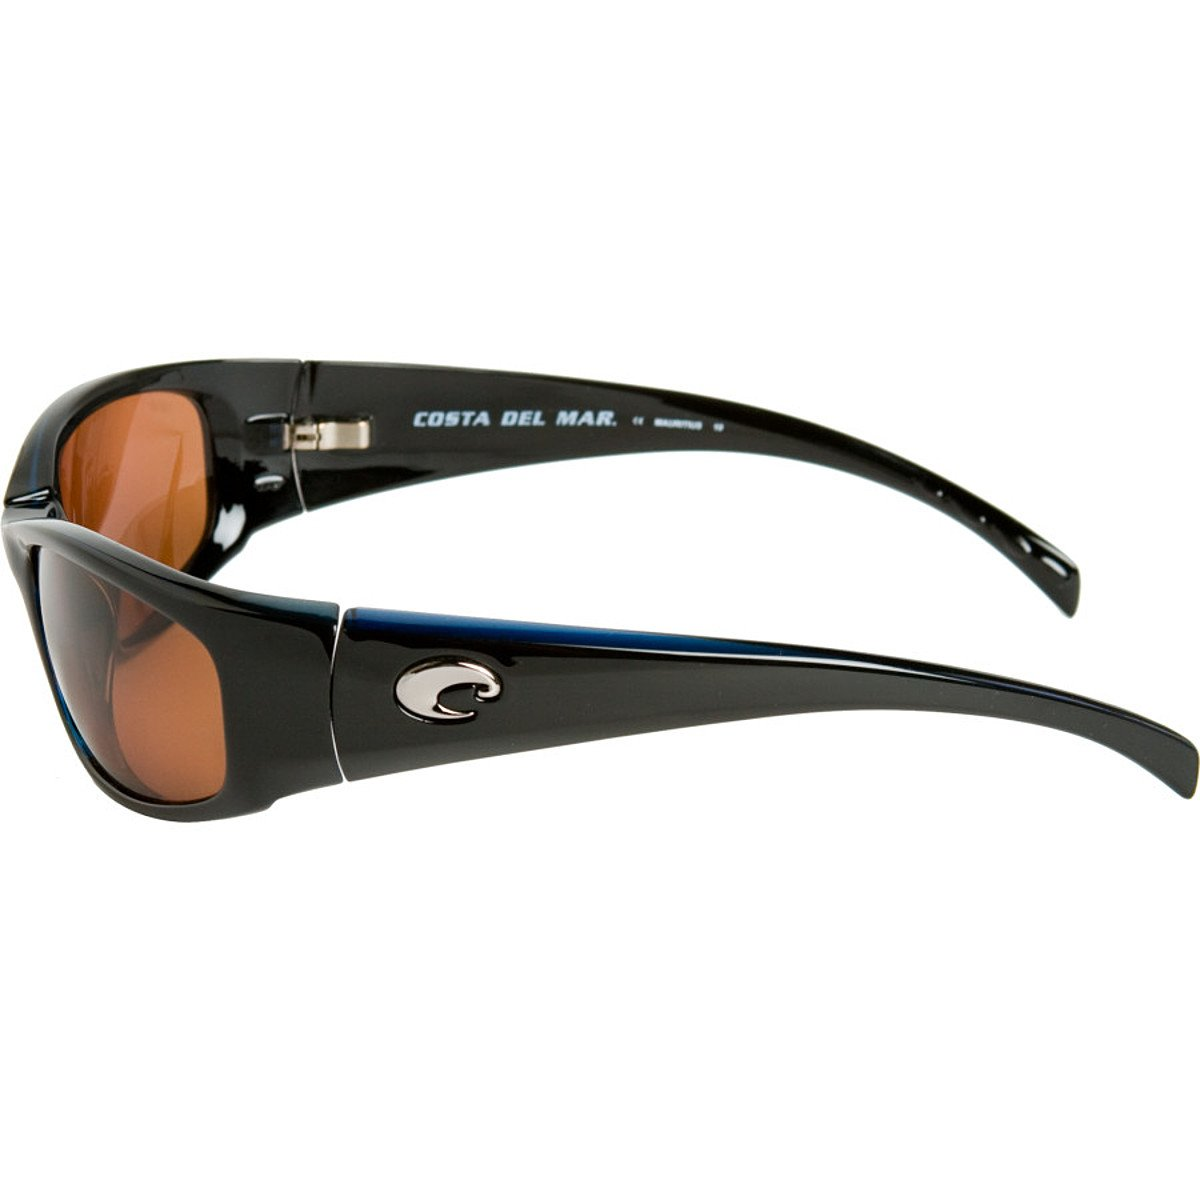 89d44acc4da Amazon.com  Costa Del Mar Sunglasses - Hammerhead- Glass   Frame  Shiny  Black Lens  Polarized Silver Mirror Wave 580 Glass  Clothing